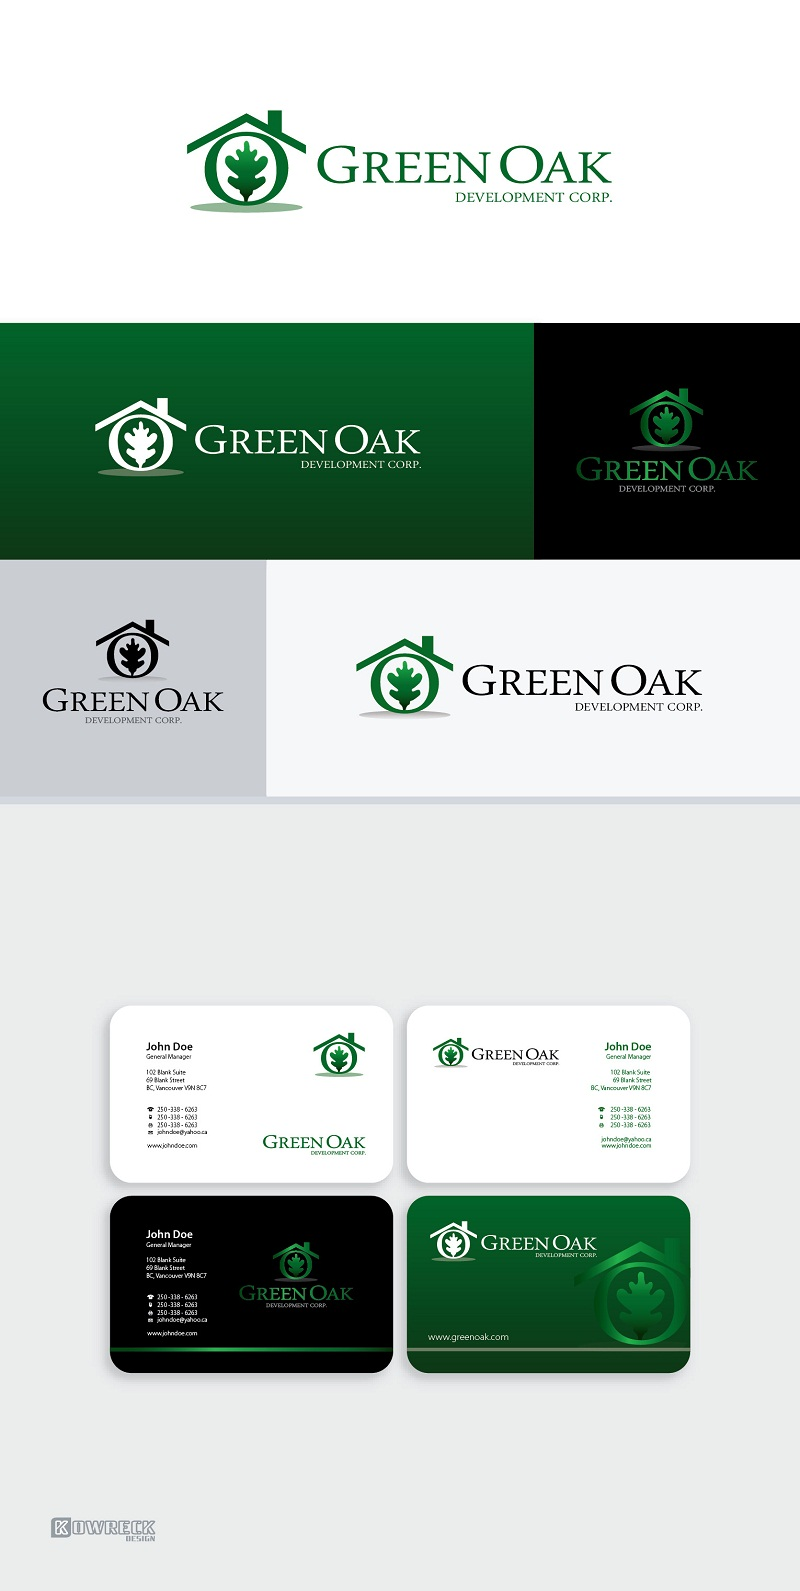 Logo Design by kowreck - Entry No. 32 in the Logo Design Contest Unique Logo Design Wanted for Green Oak Development Corp..